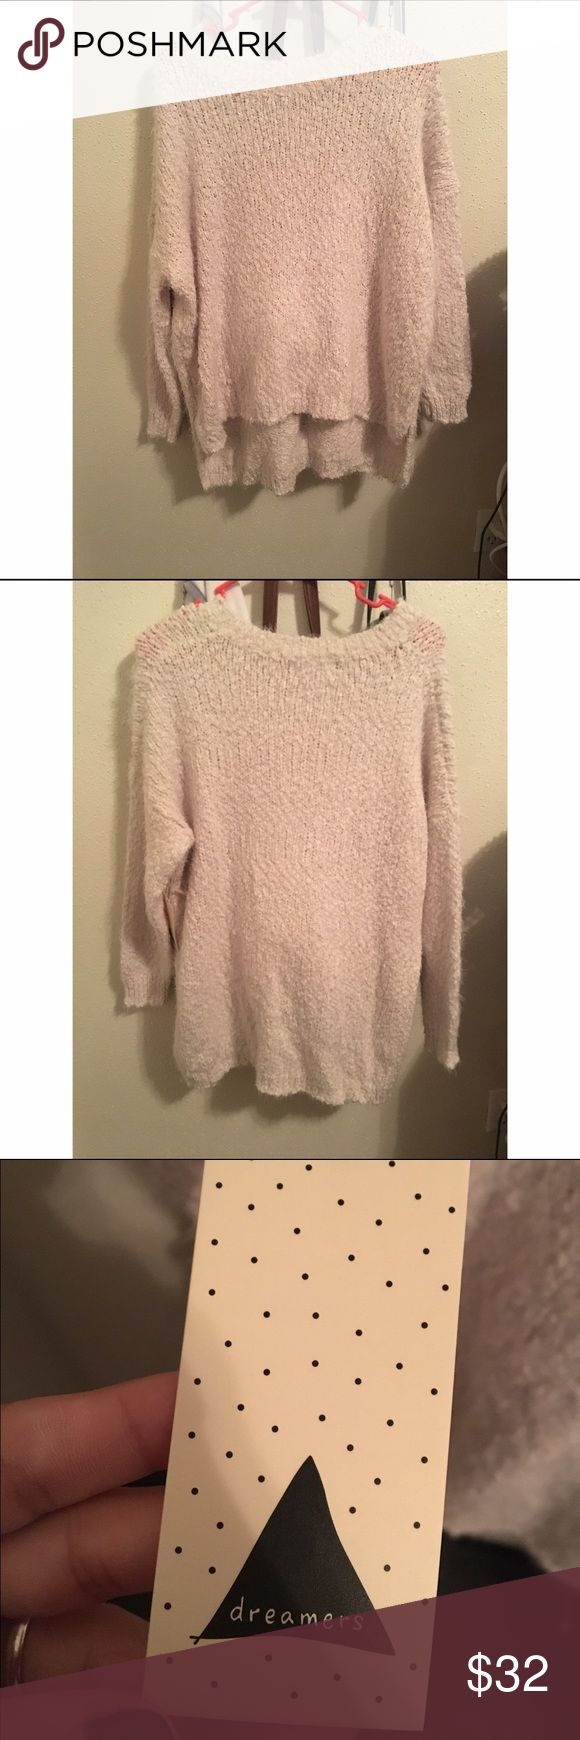 Shop AOF Aspyn Ovard sweater It's a super super soft sweater with a little hi low that was purchased from Aspyn Ovard's online store but it's the brand Dreamers. It's a size M/L Shop AOF Sweaters